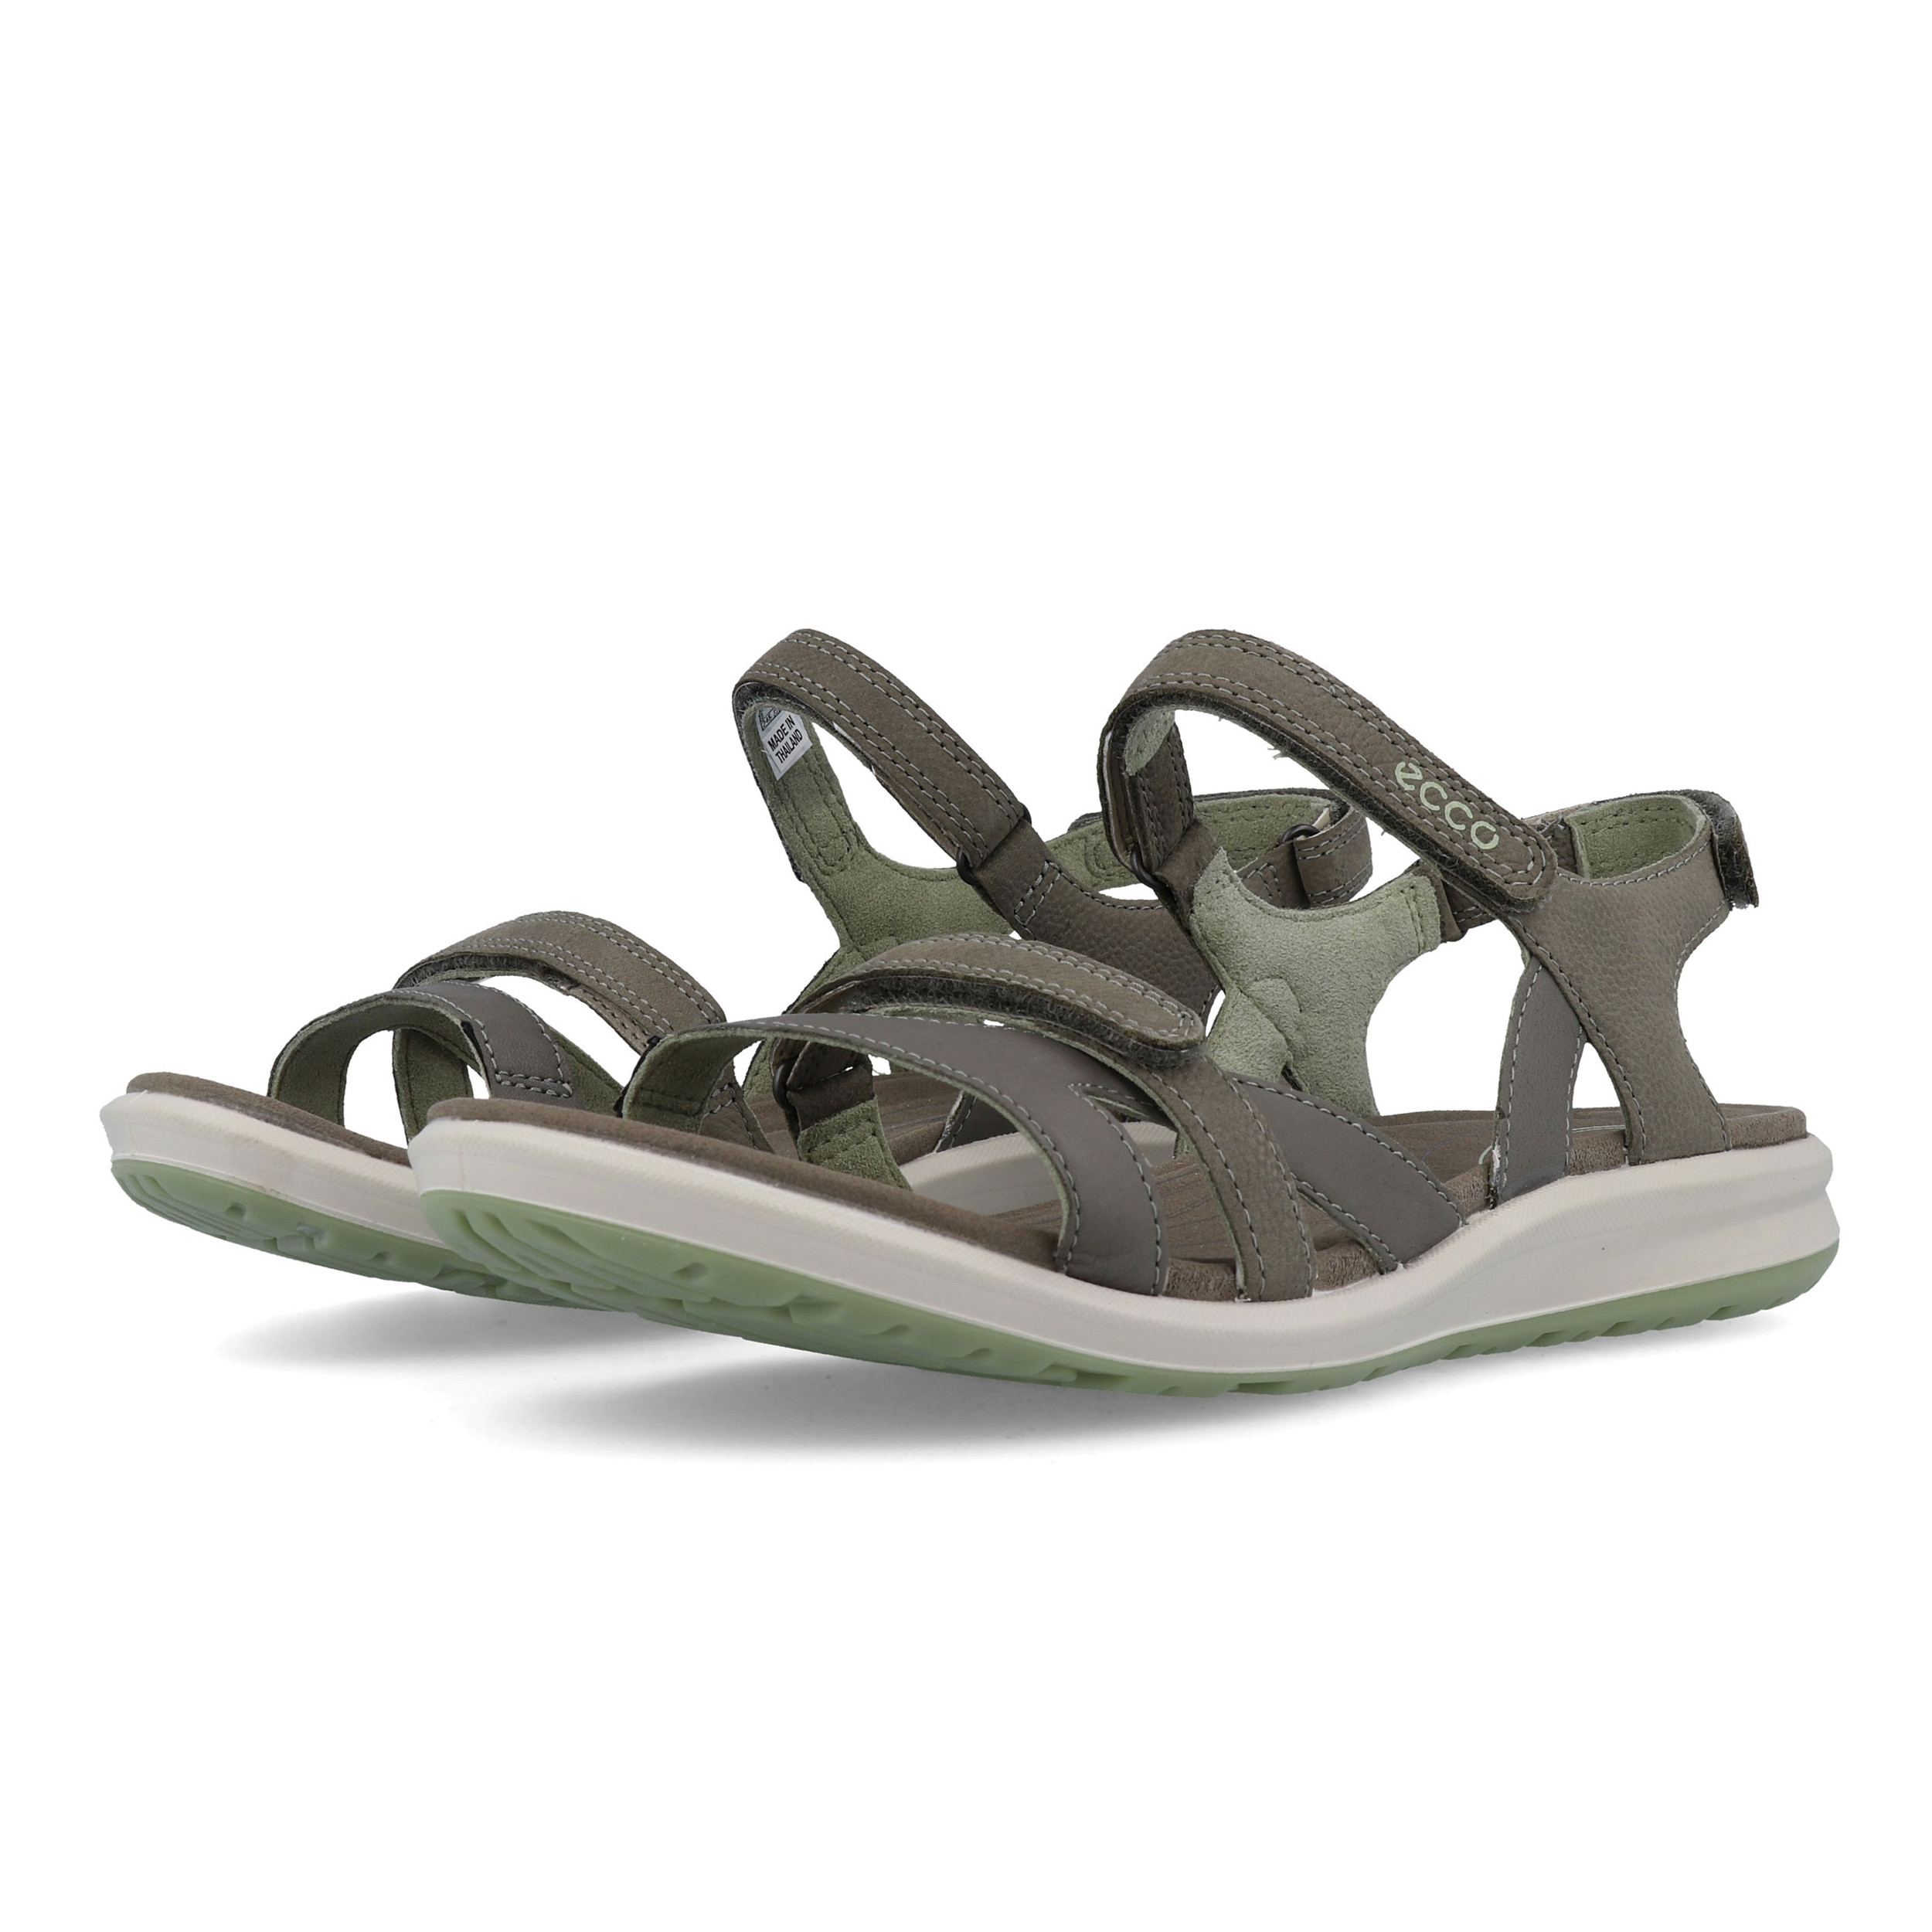 639179f3 Details about Ecco Womens Cruise II Walking Shoes Sandals Green Grey Sports  Outdoors